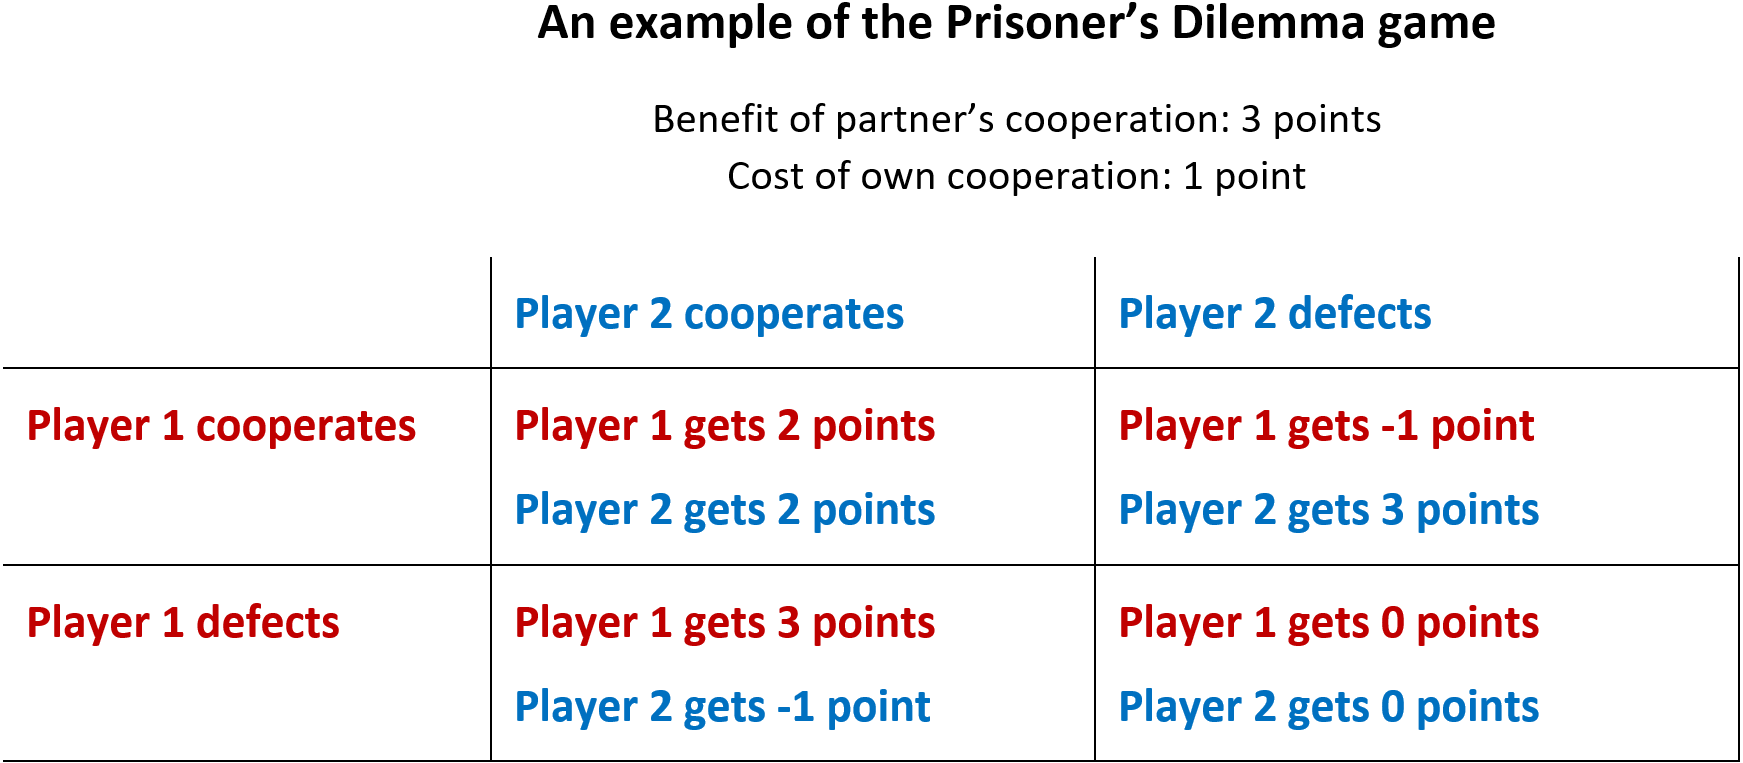 Example of a payoff matrix for a Prisoner's Dilemma game